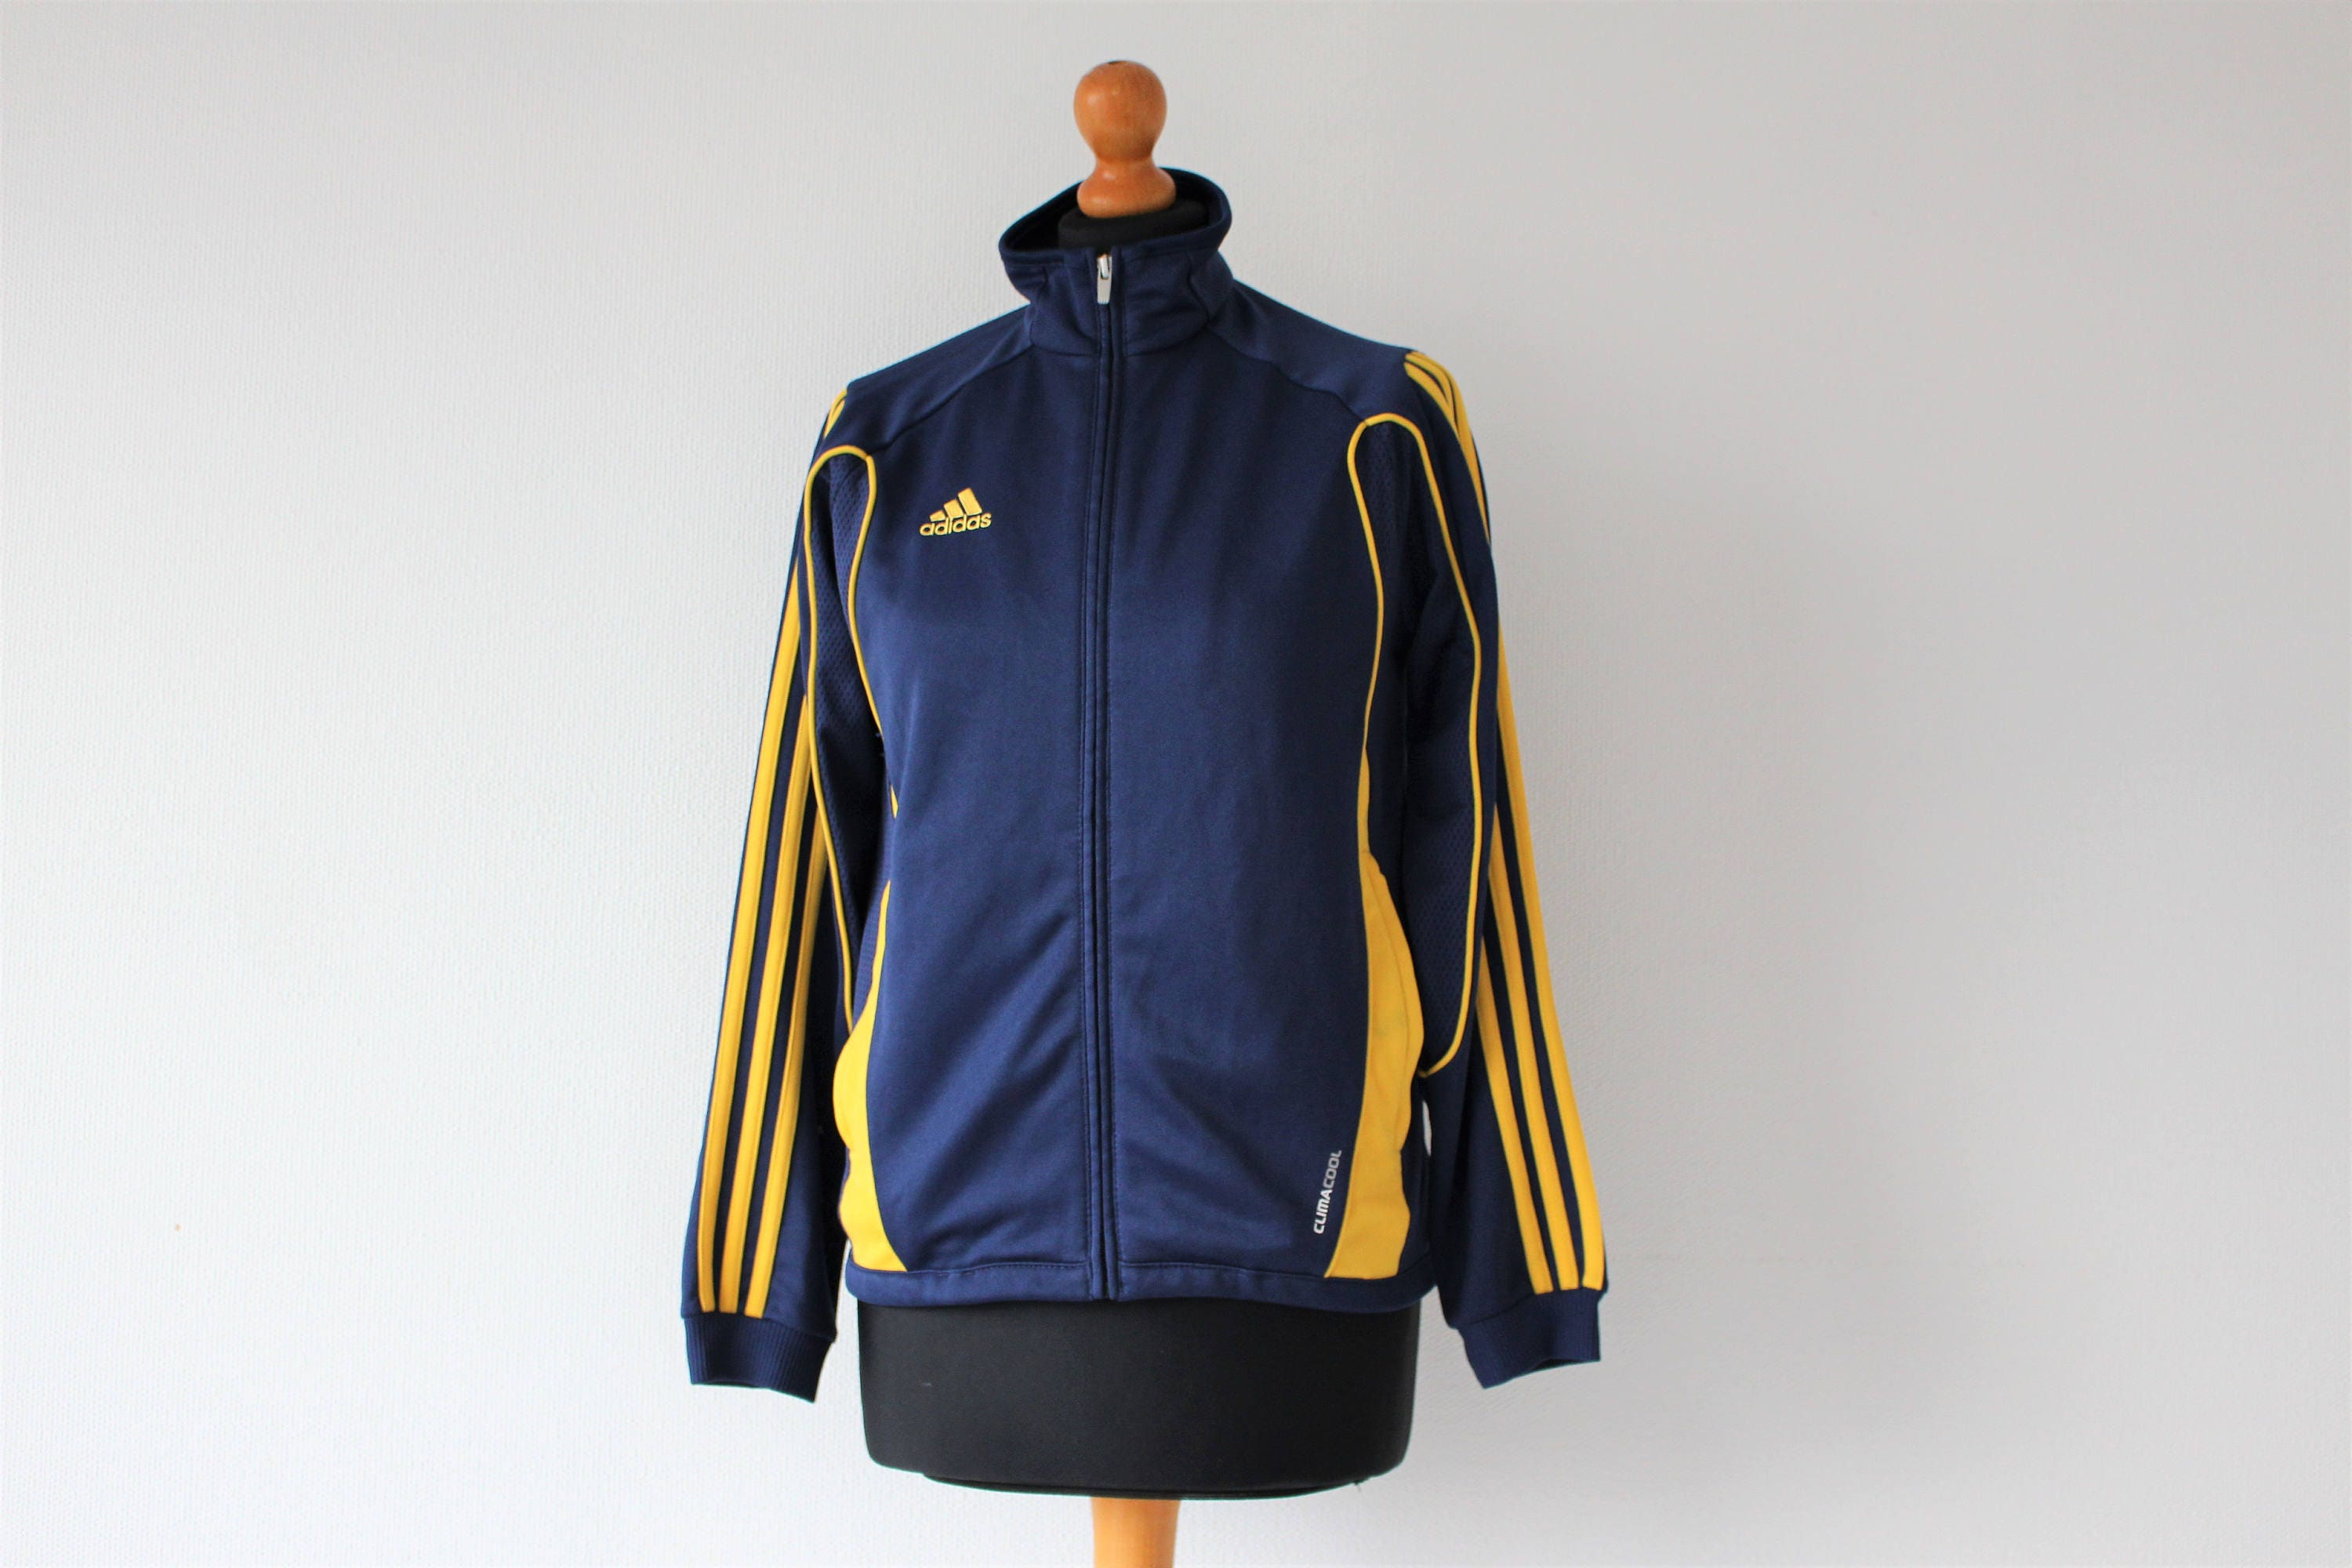 Blue Adidas Track Jacket 3 stripes Vintage Adidas Clima 365 Modell Hipster Sports Jacket Striped Athletic Size Large